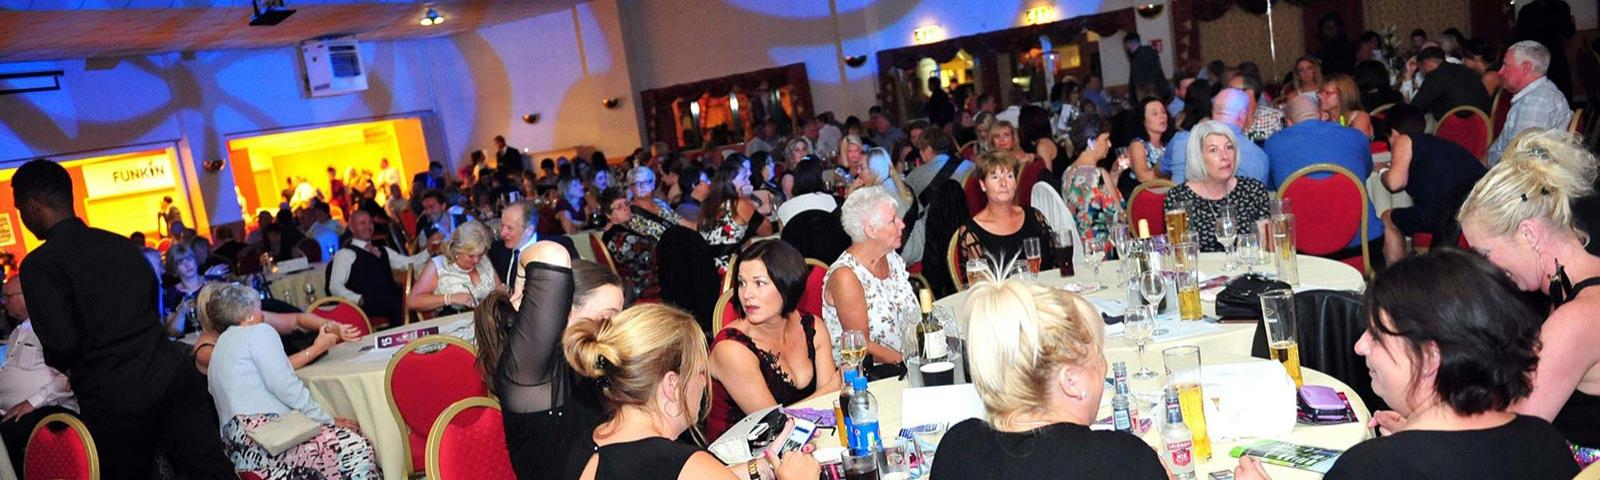 Guests enjoy a night partying at Wolverhampton Racecourse.